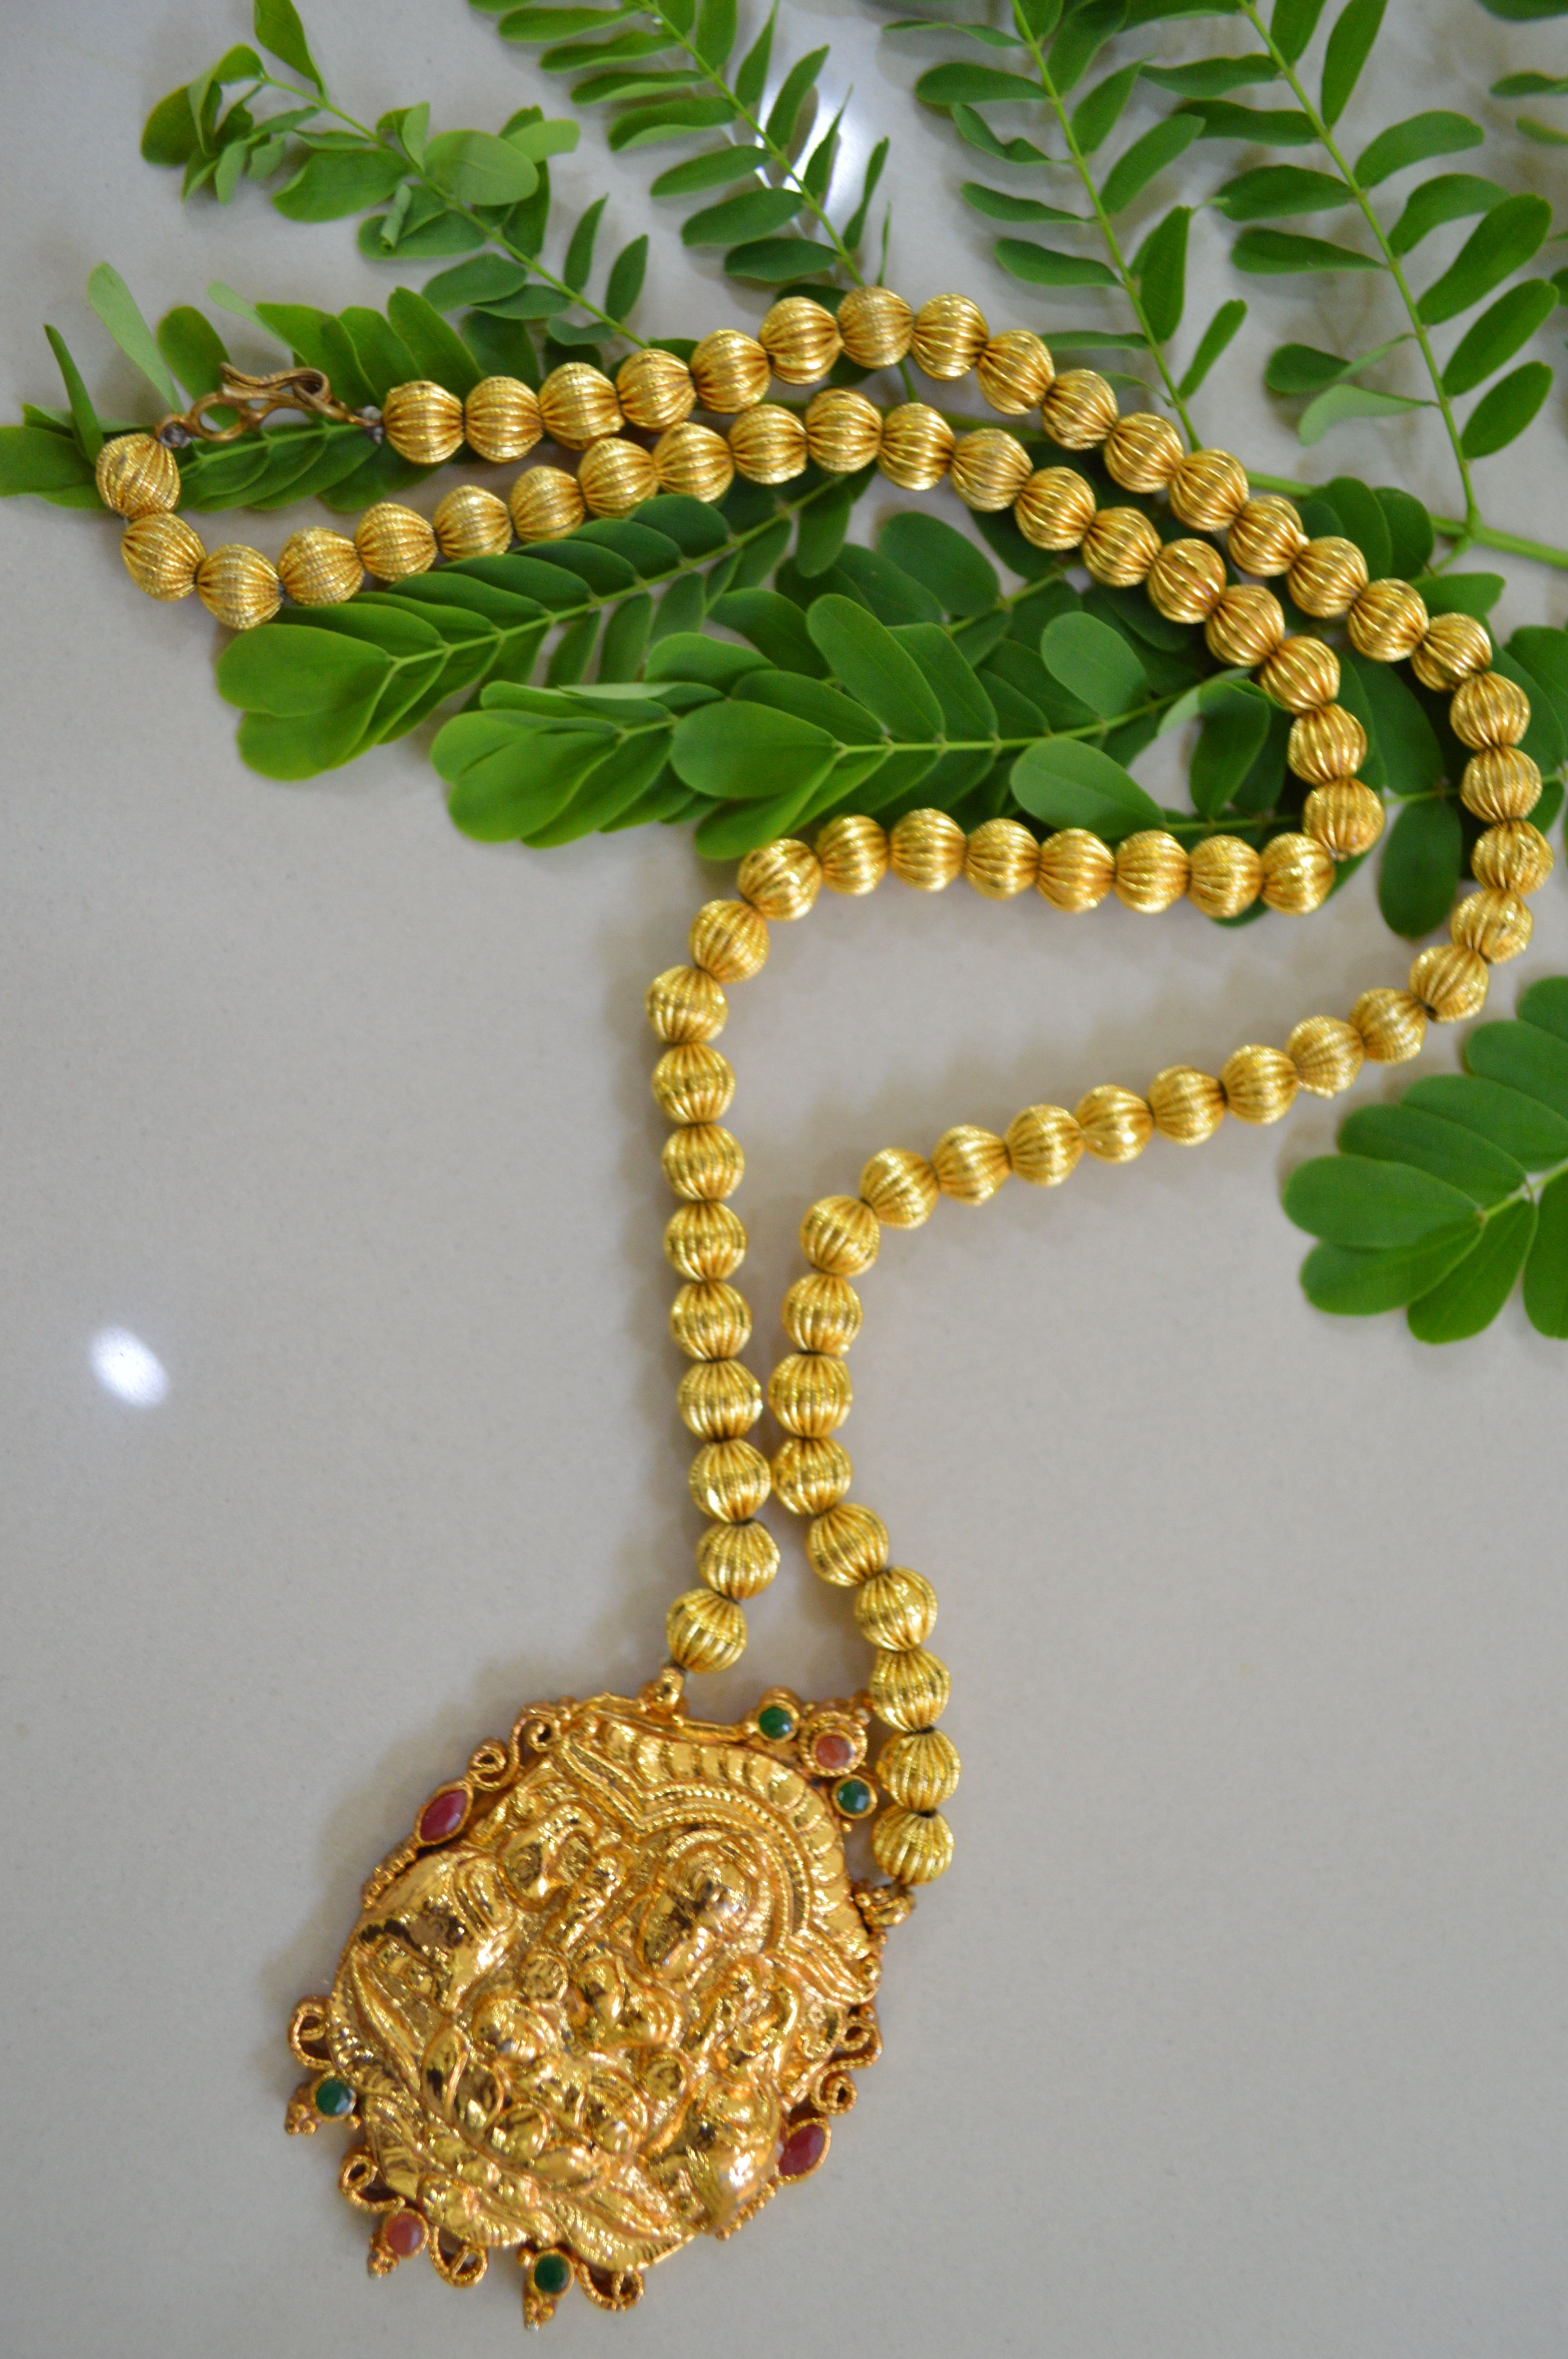 Lakshmi Pendant with Balls Chain 1 gm gold or imitation jewelry